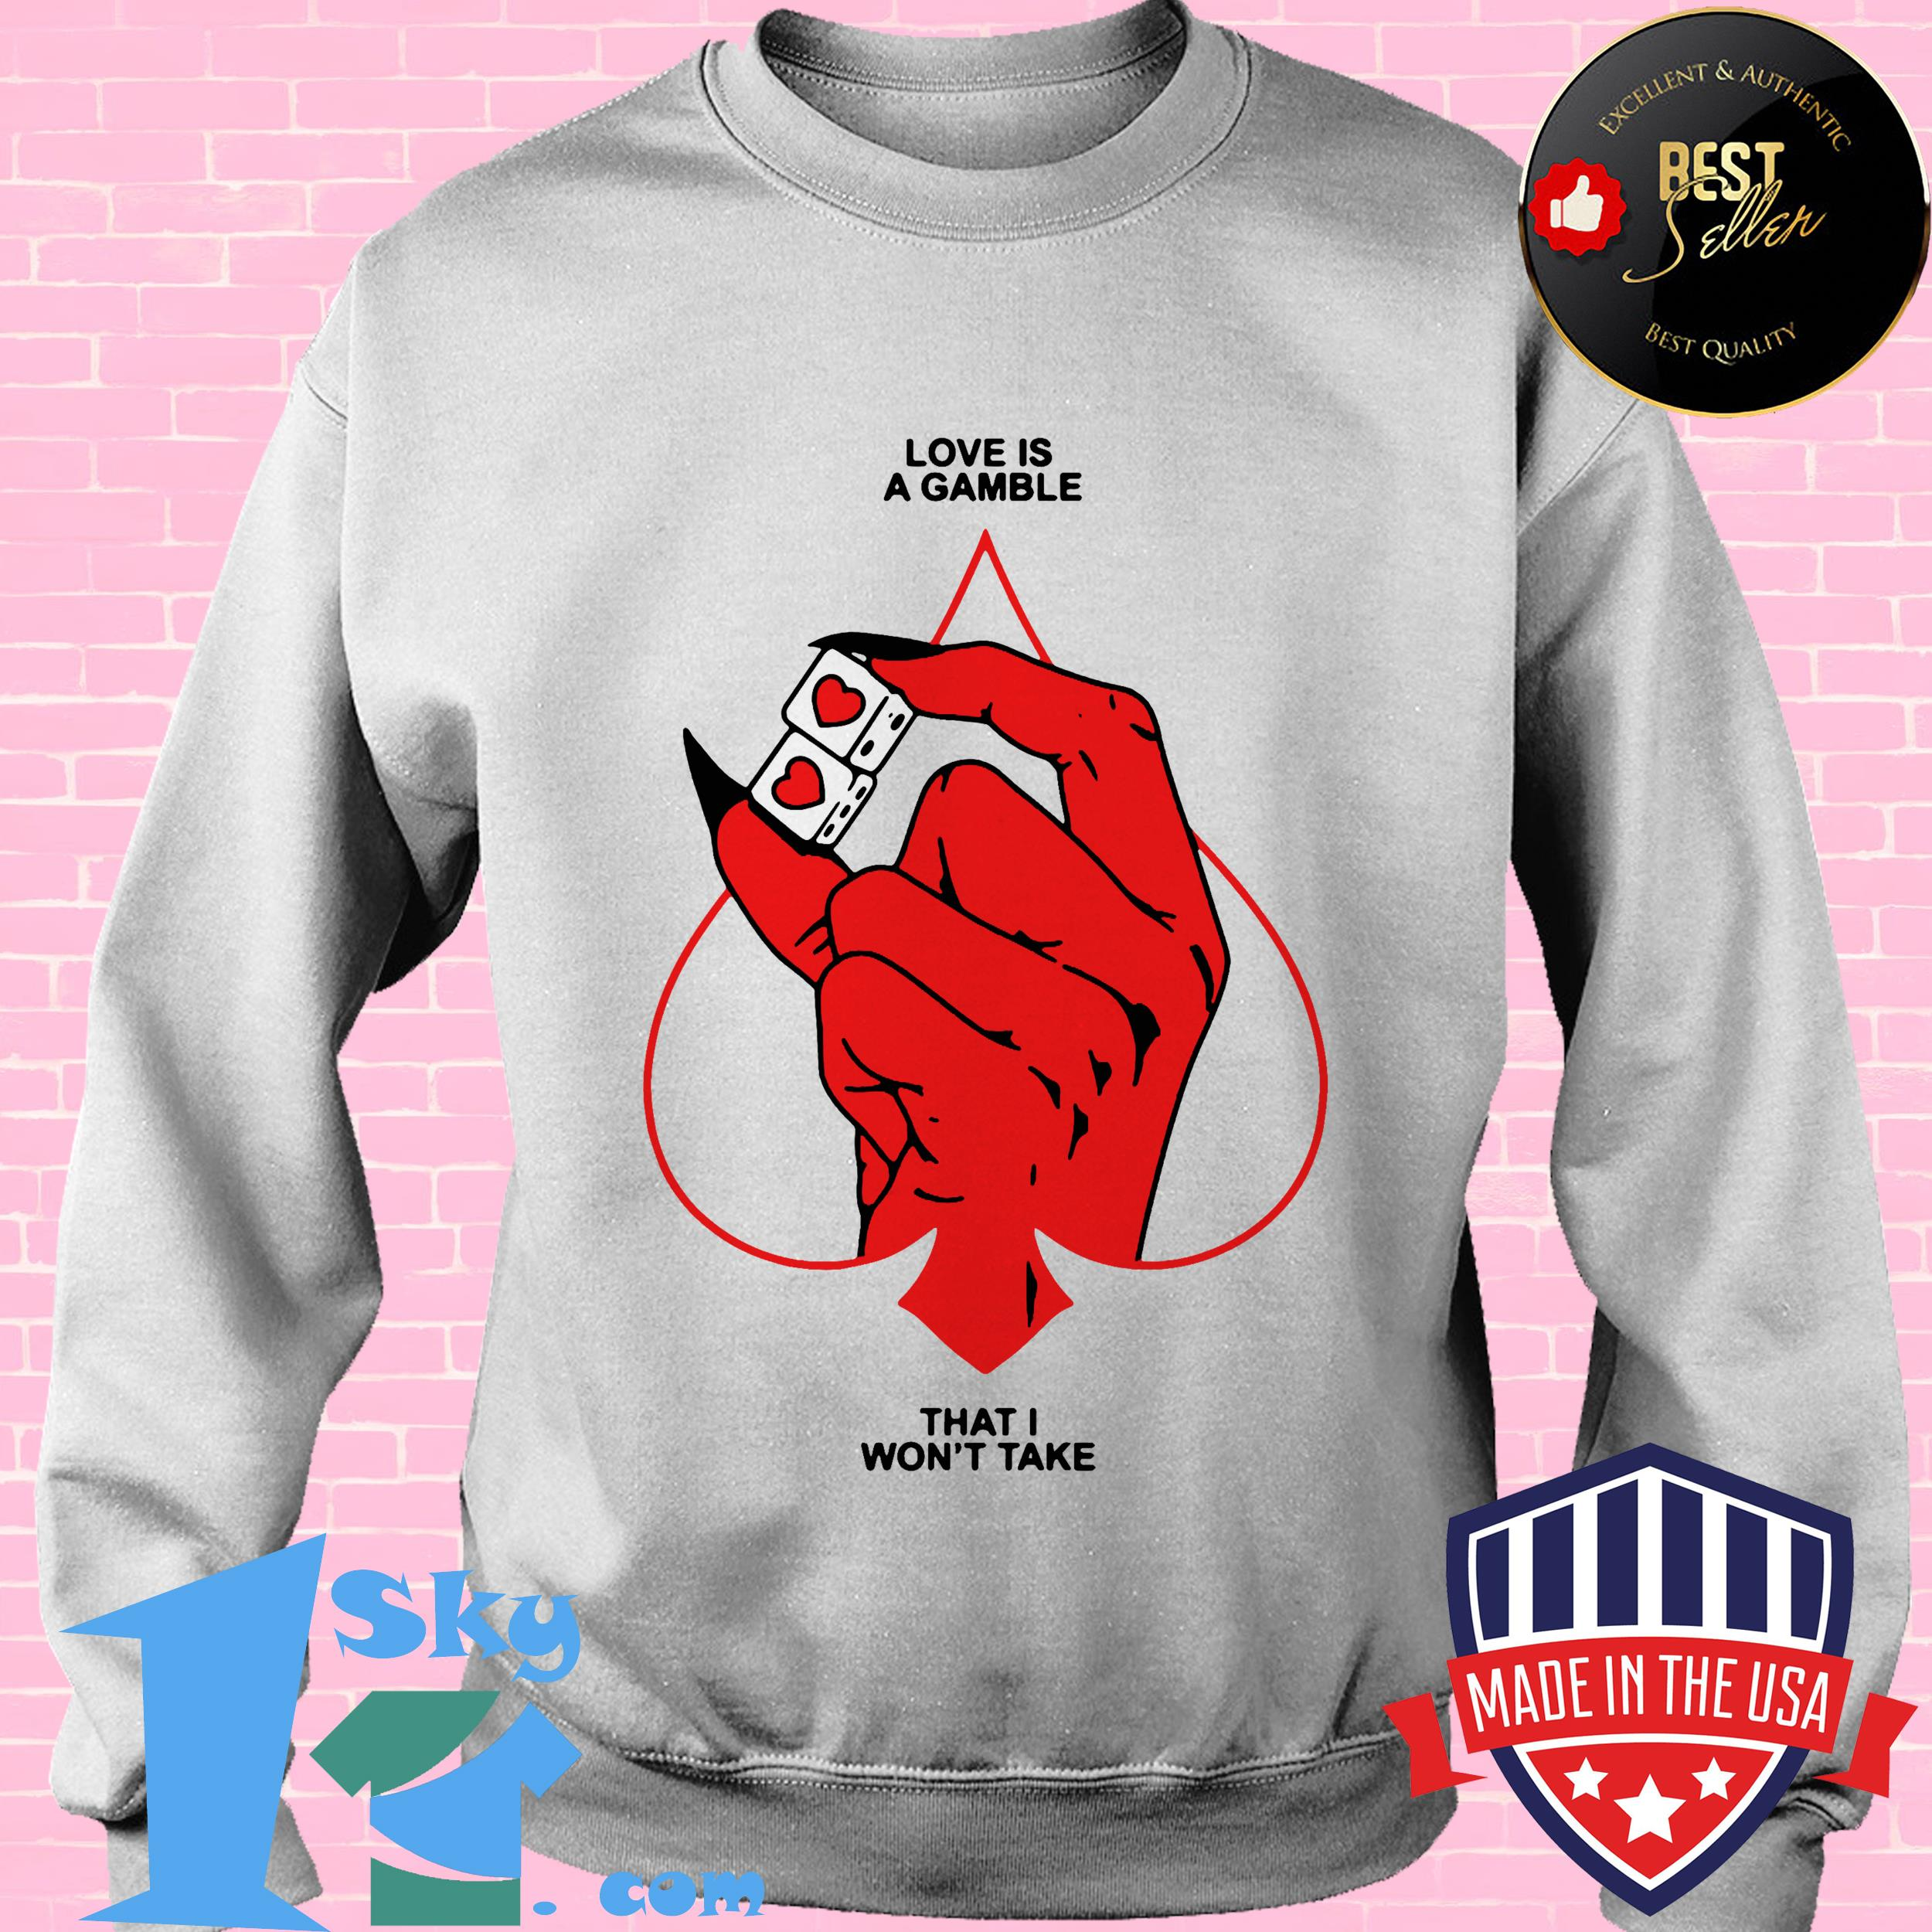 love is a gamble that i wont take sweatshirt - Love Is A Gamble That I Won't Take shirt